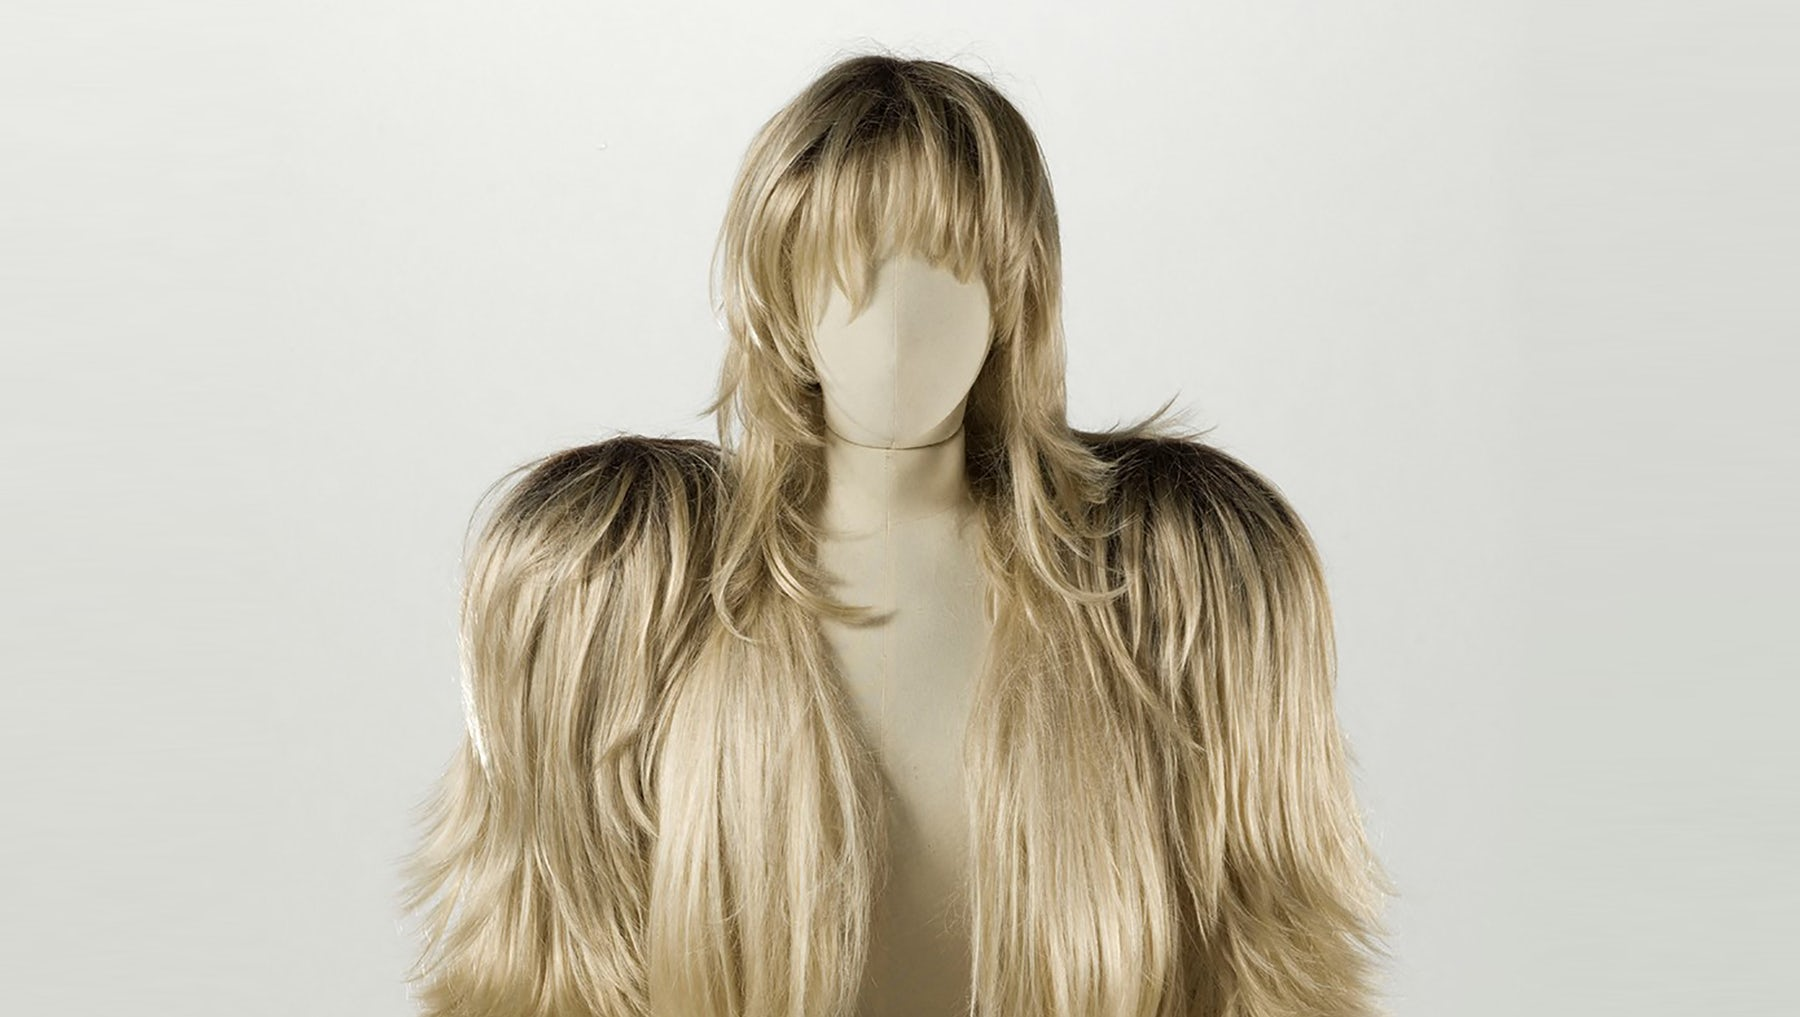 Margiela wig jacket (2008-2009) | Courtesy of Palais Galleria